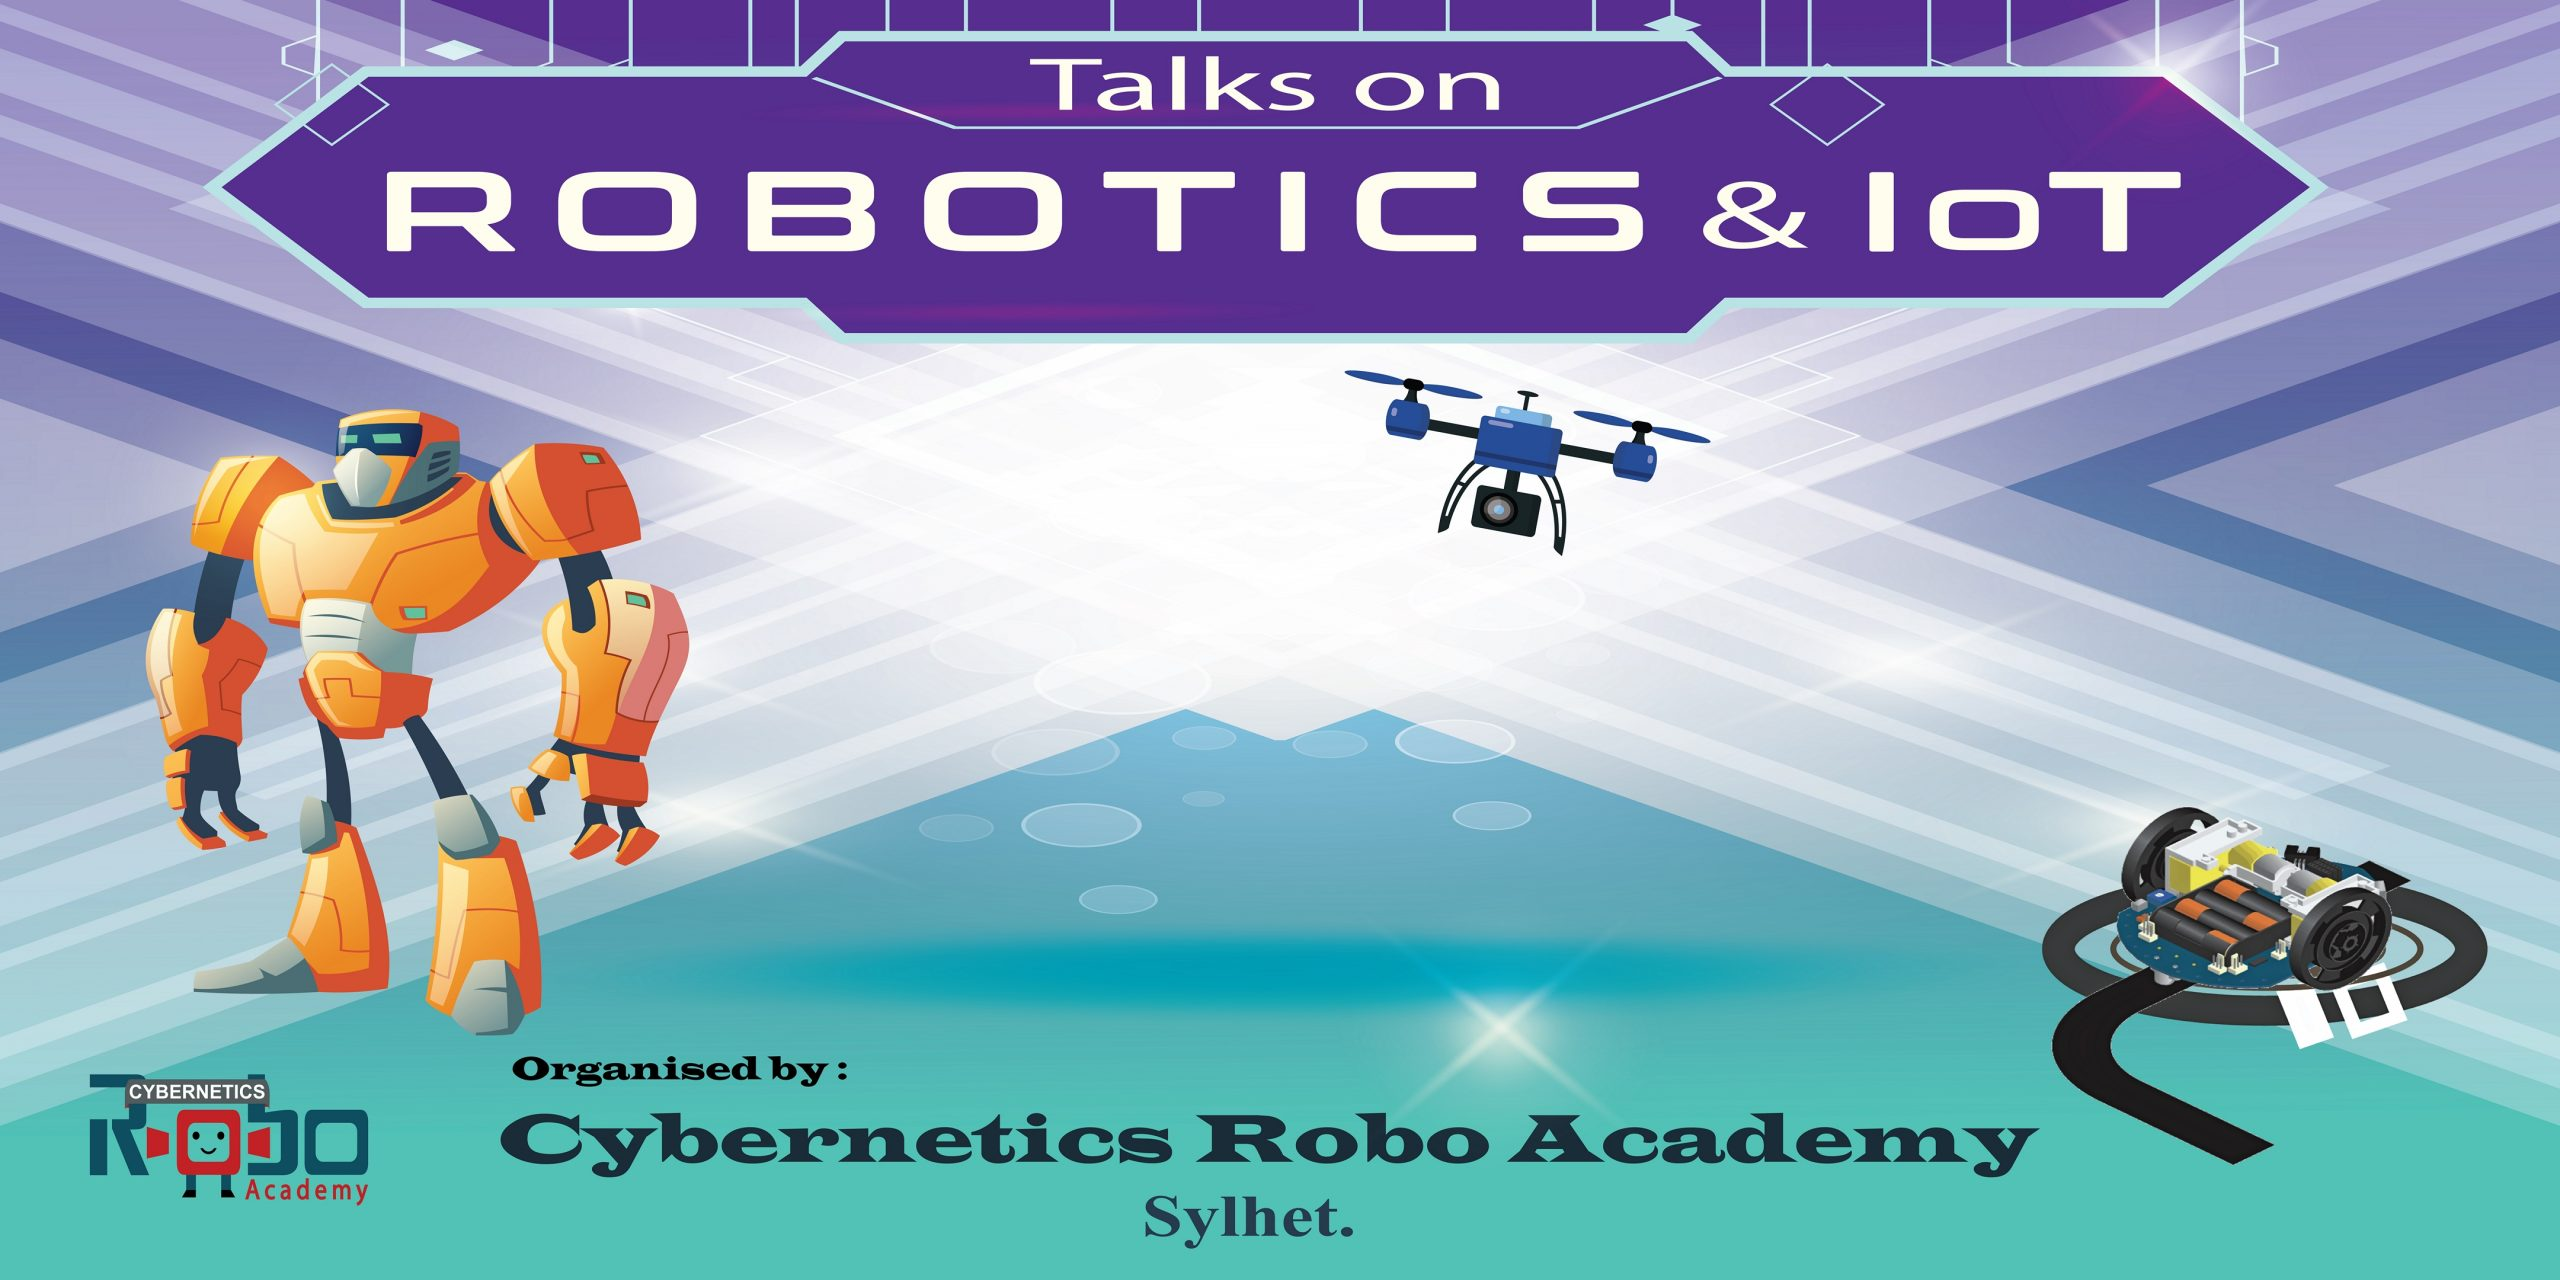 Free events at Cybernetics Robo Academy